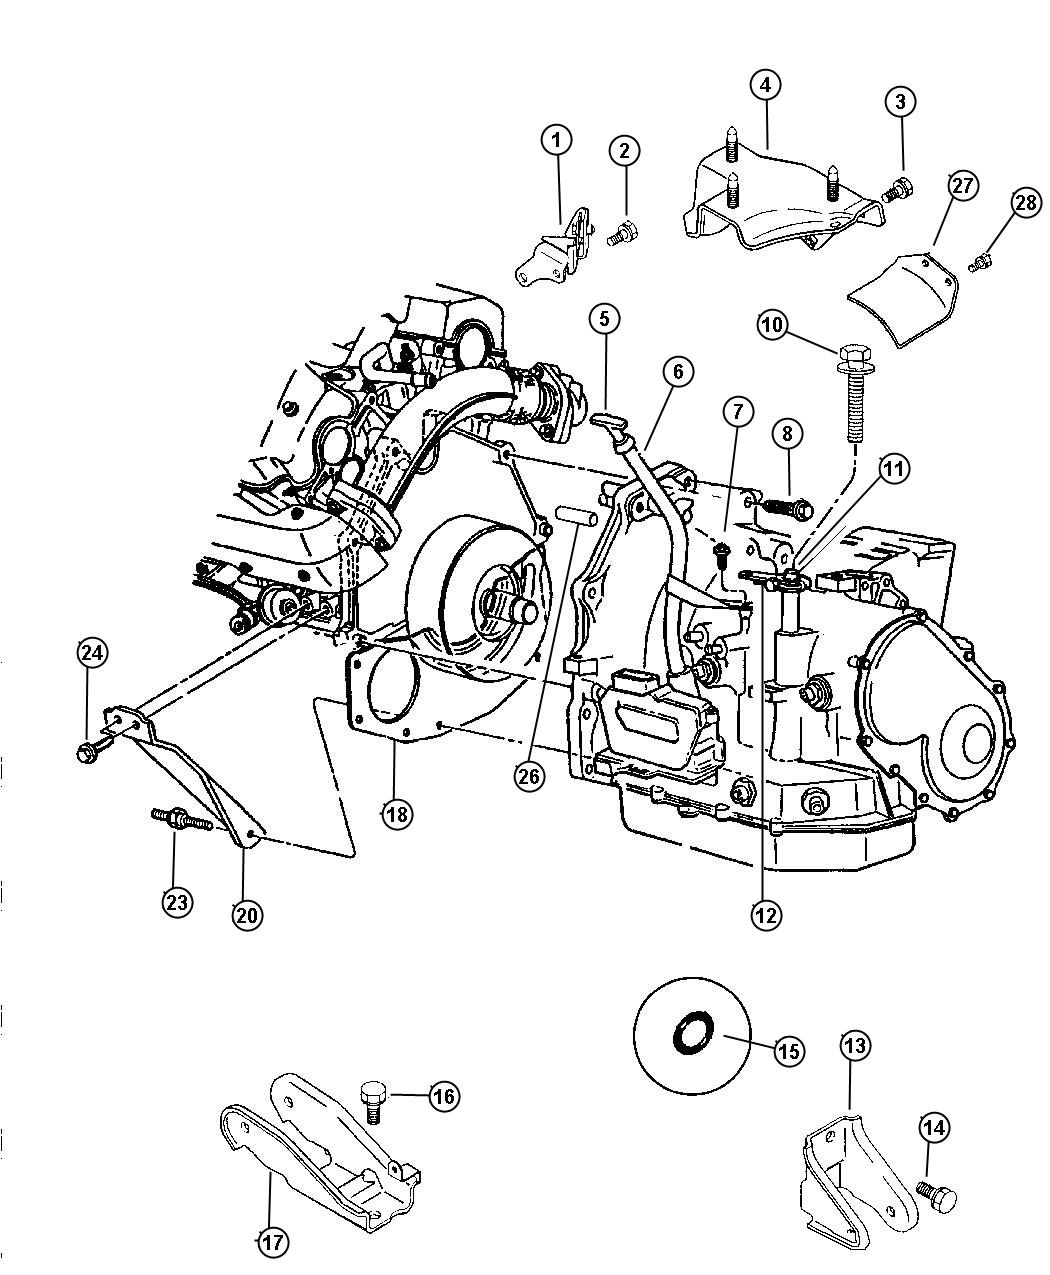 M38a1 Ignition Switch Wiring Diagram Ignition Switch